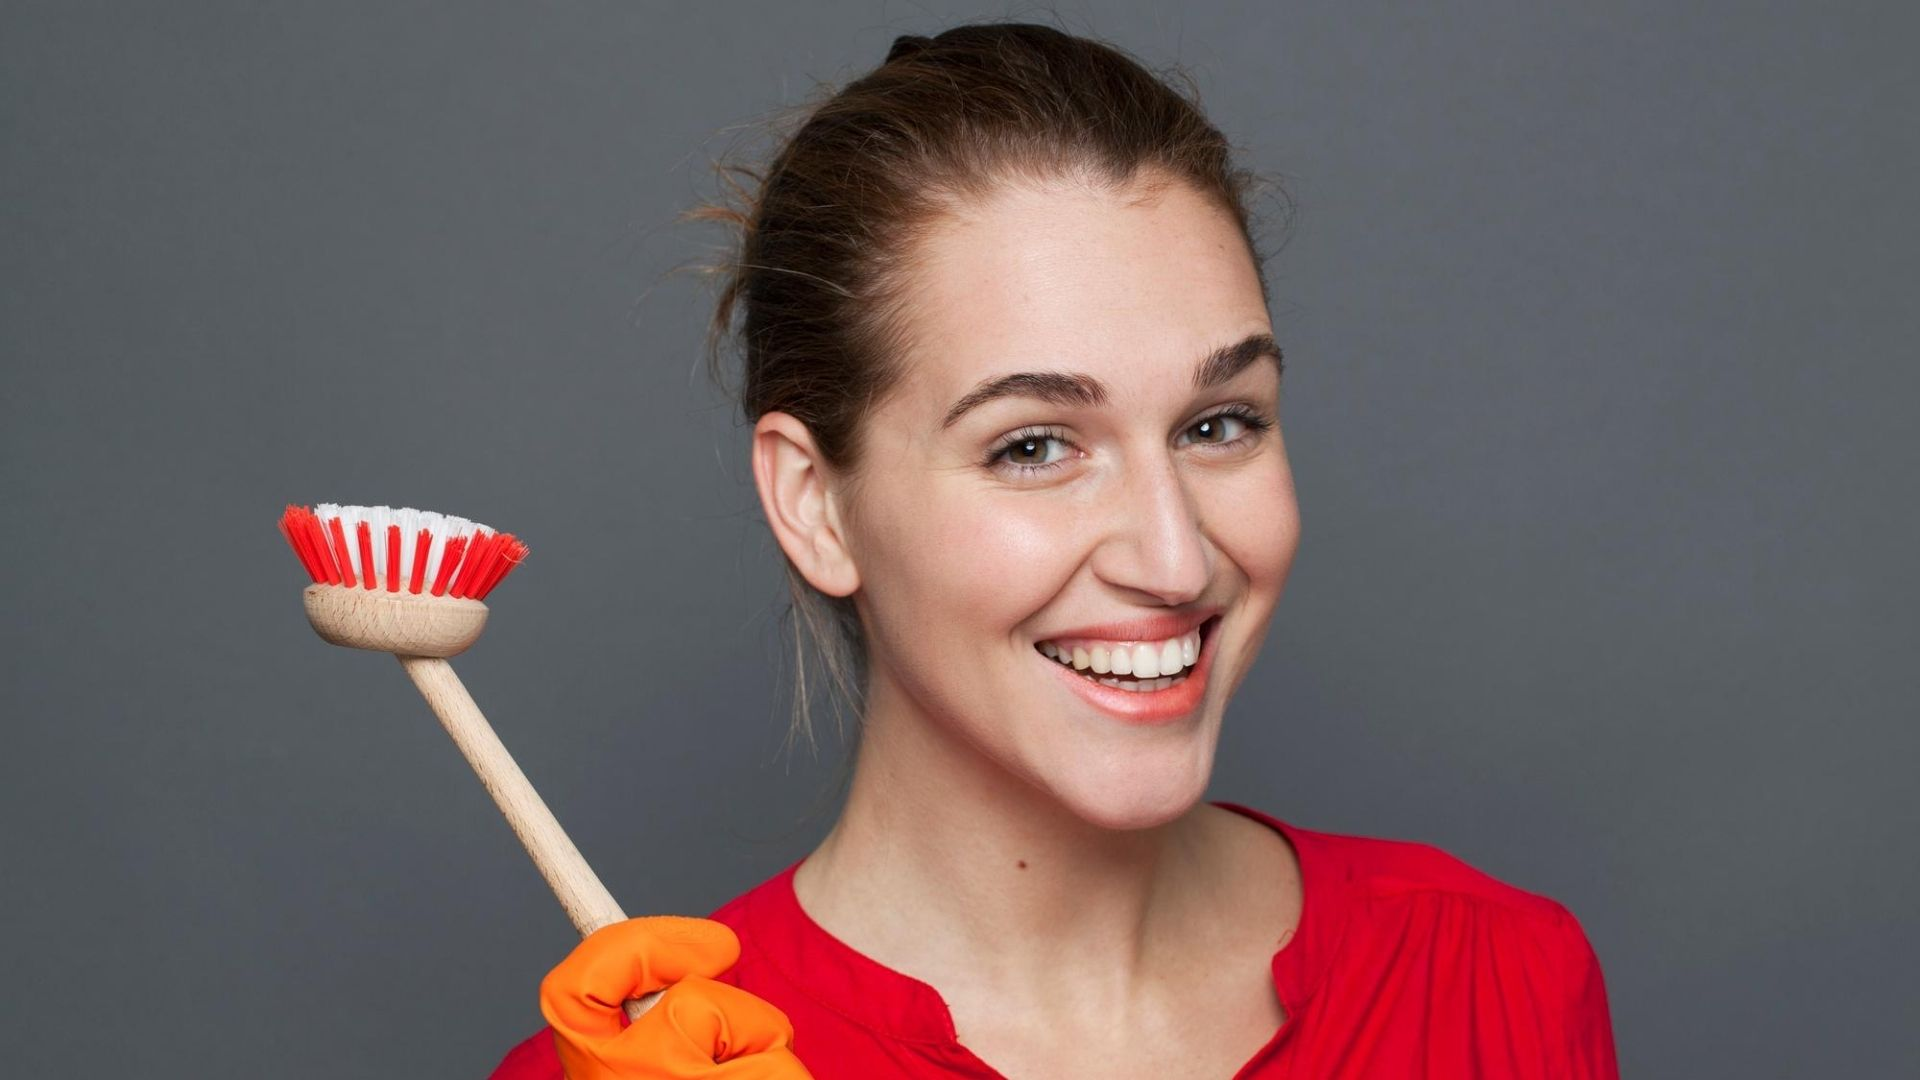 finding the best scrub brush for dishes